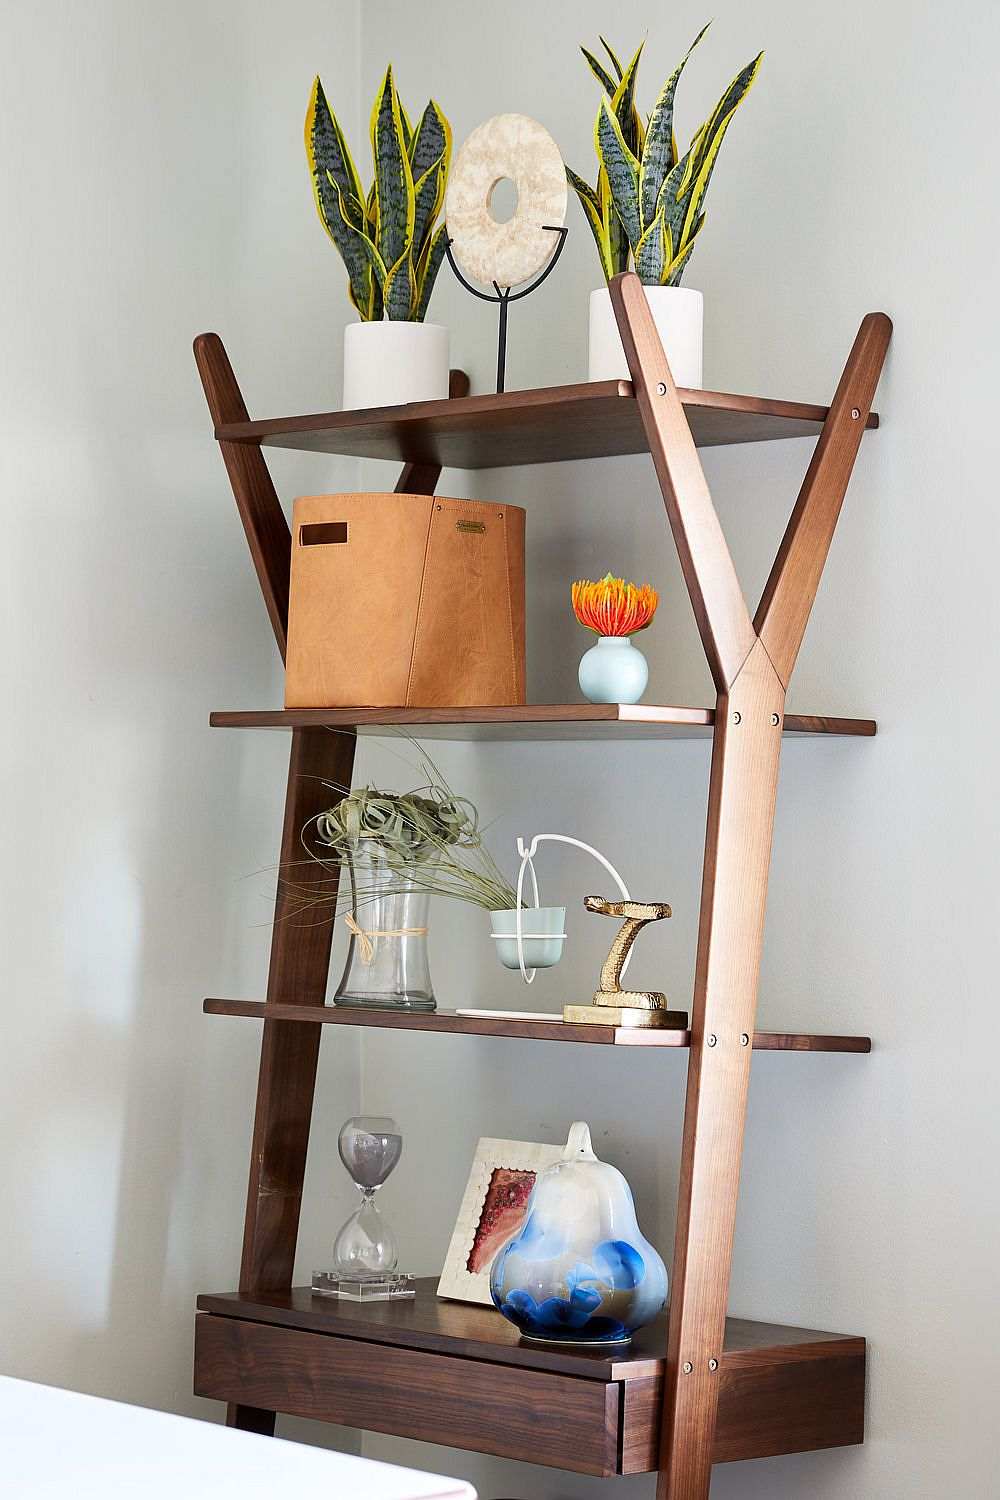 Desk and wooden shelf rolled into one and placed in the dining room corner save ample space